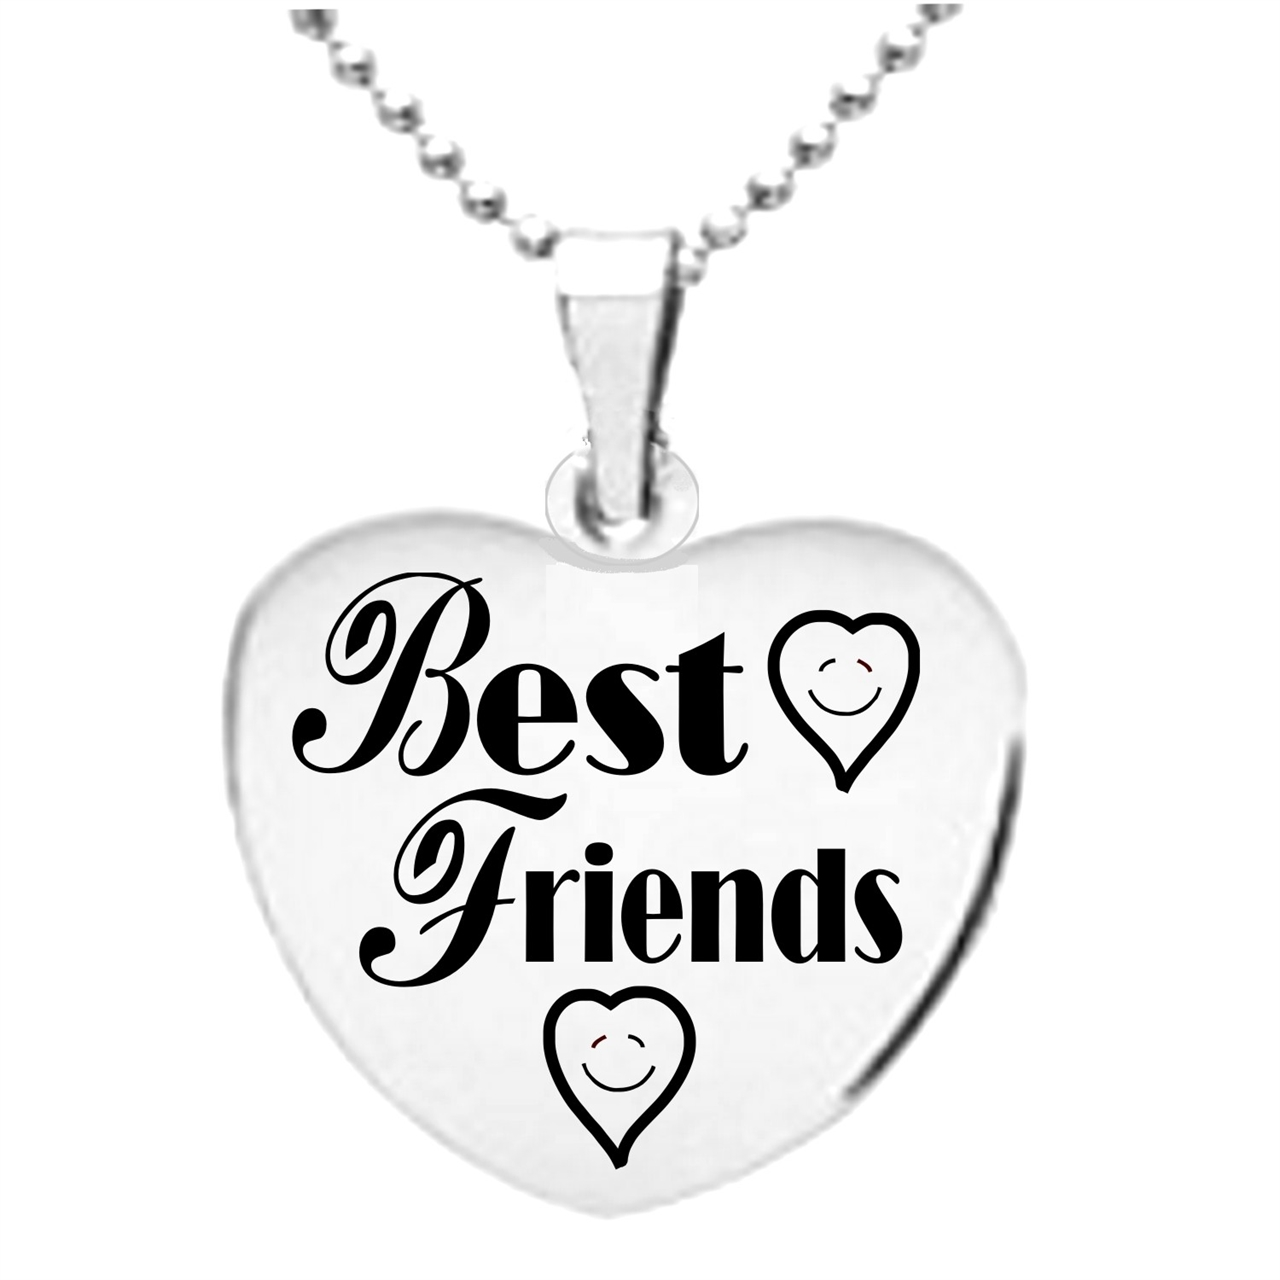 1280x1280 Best Friend Coloring Pages Best Friend Coloring Page